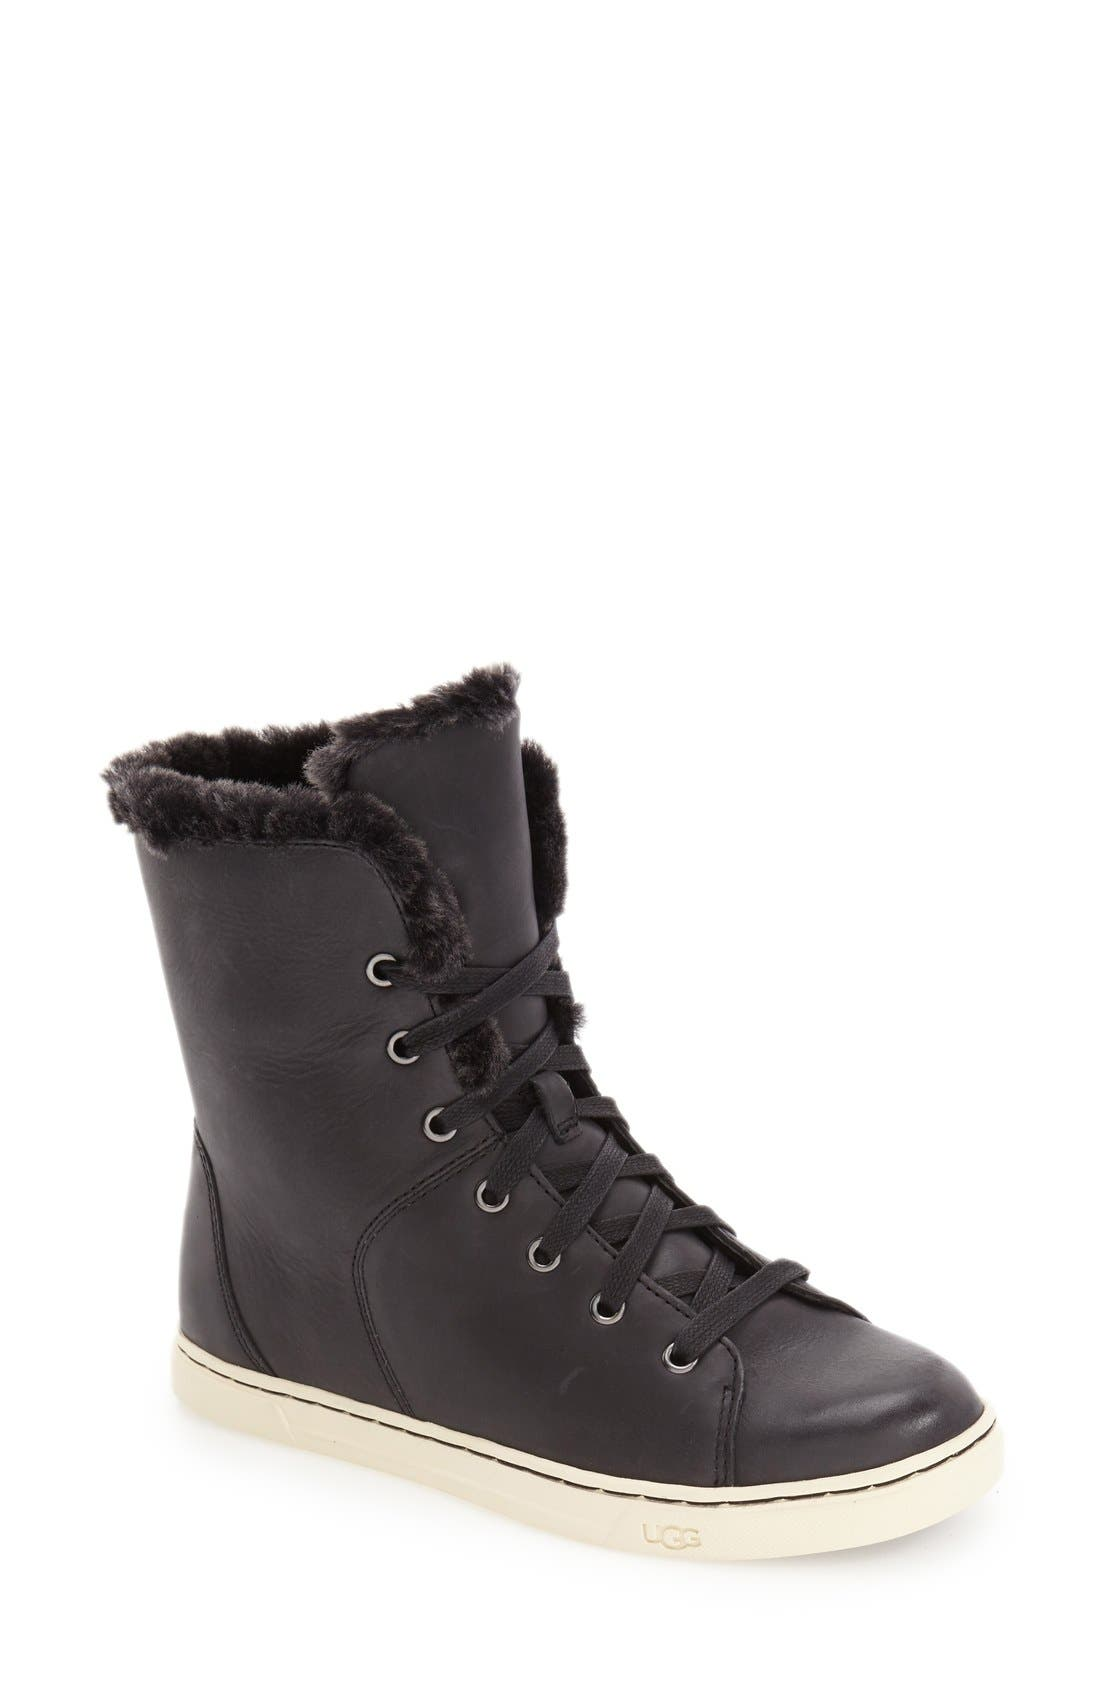 'Croft Luxe' Genuine Shearling High Top Sneaker, Main, color, 001